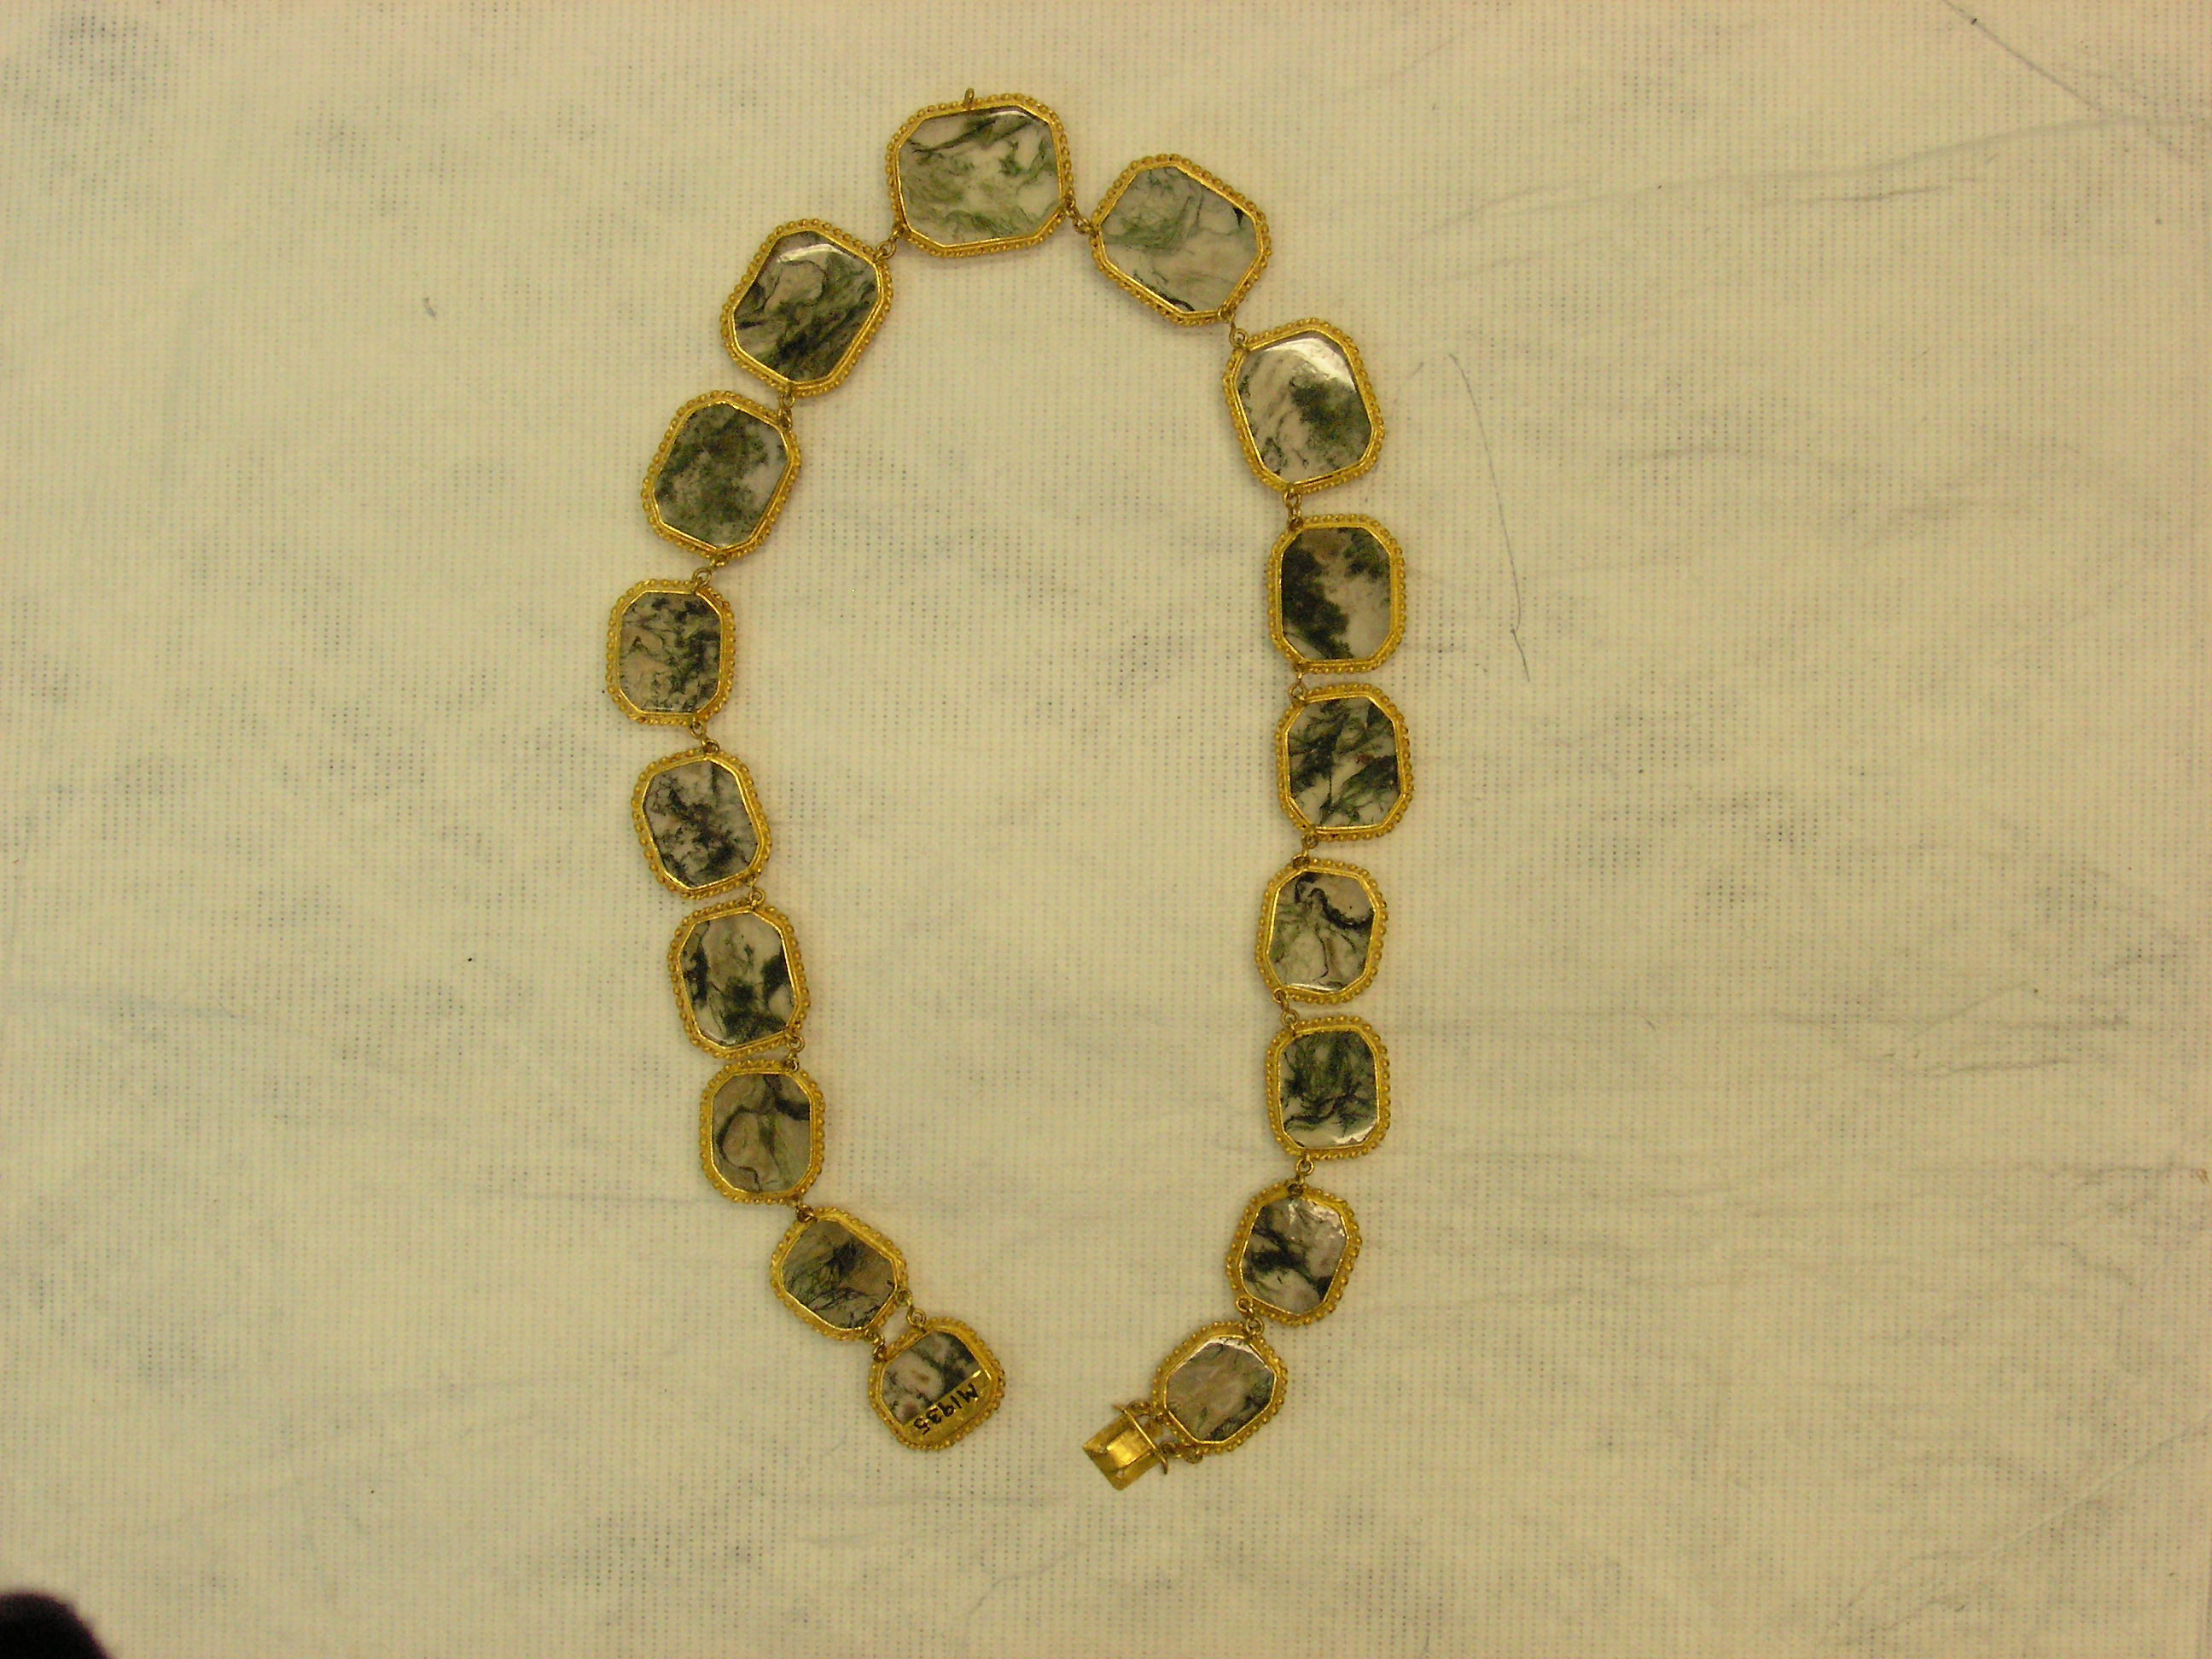 File:Necklace (AM 14779 4)